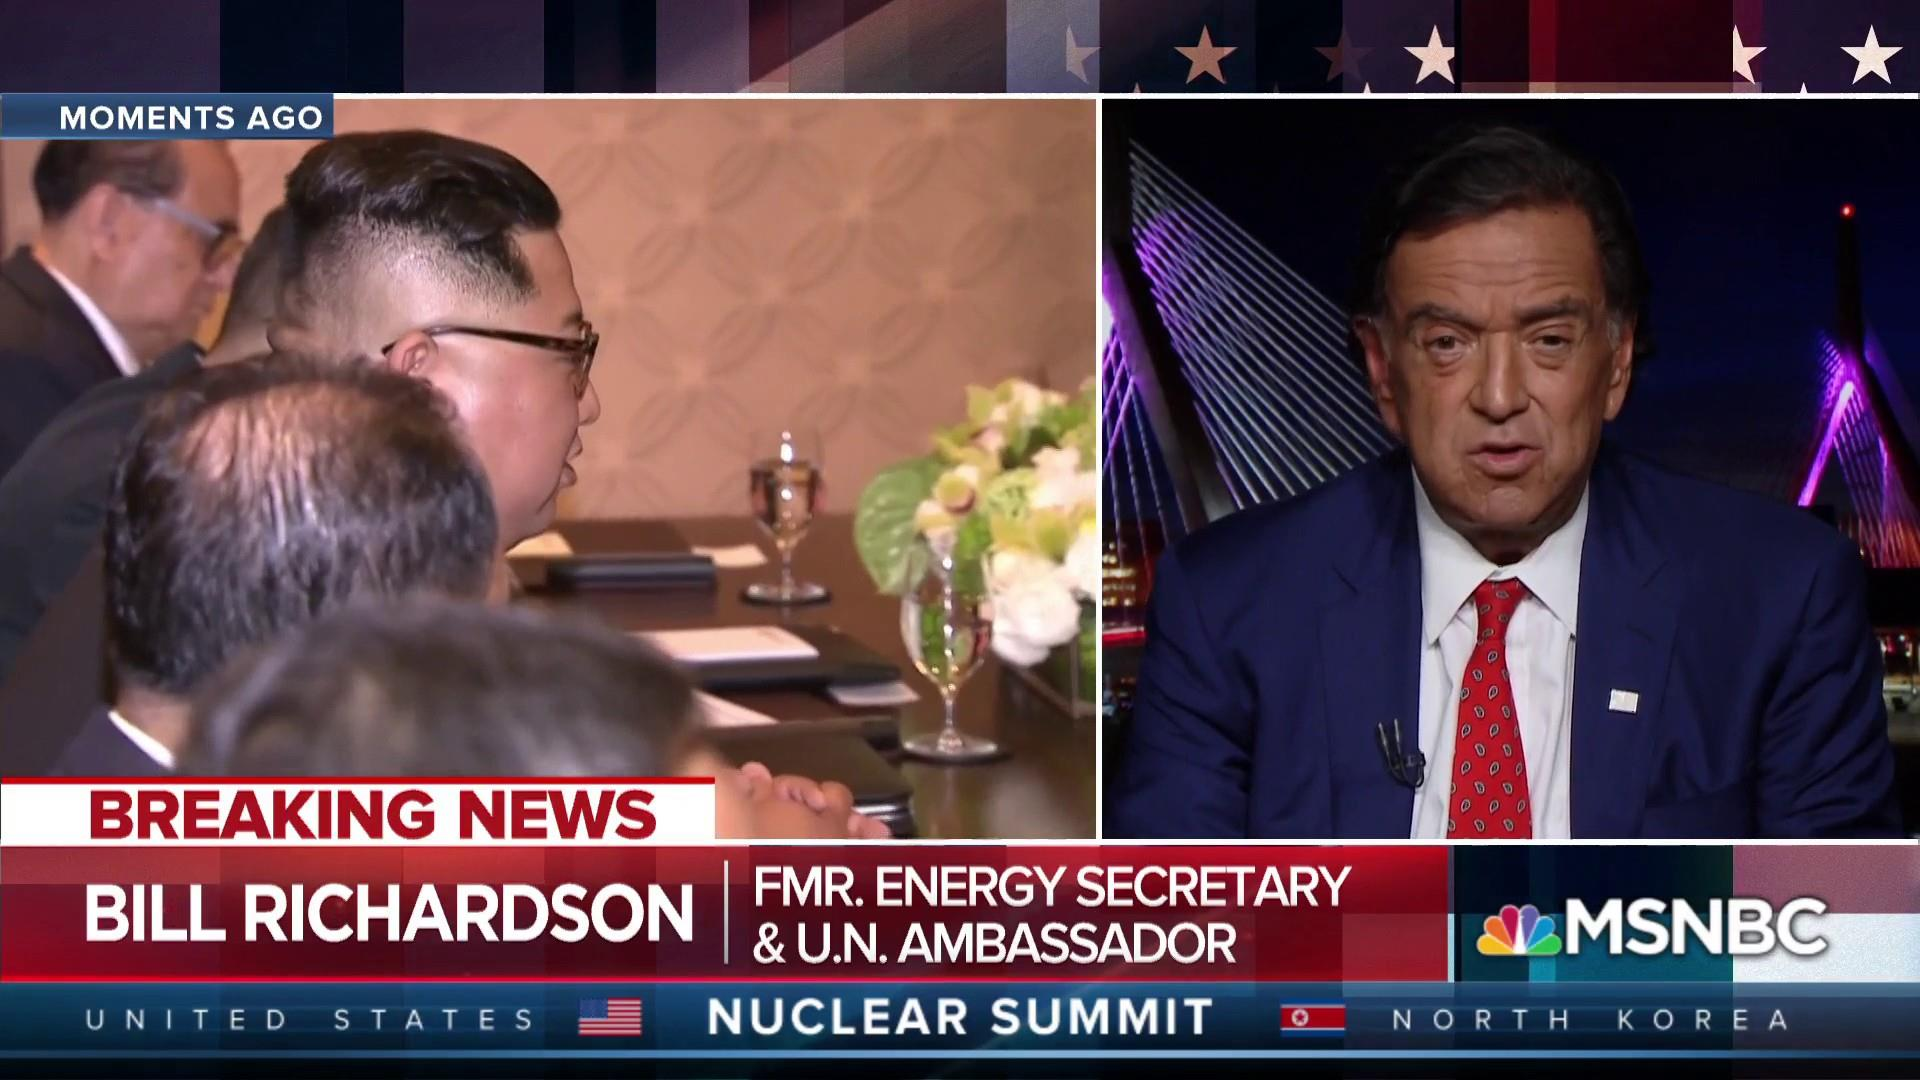 Summit marks normalization progress, but leaves nuclear questions